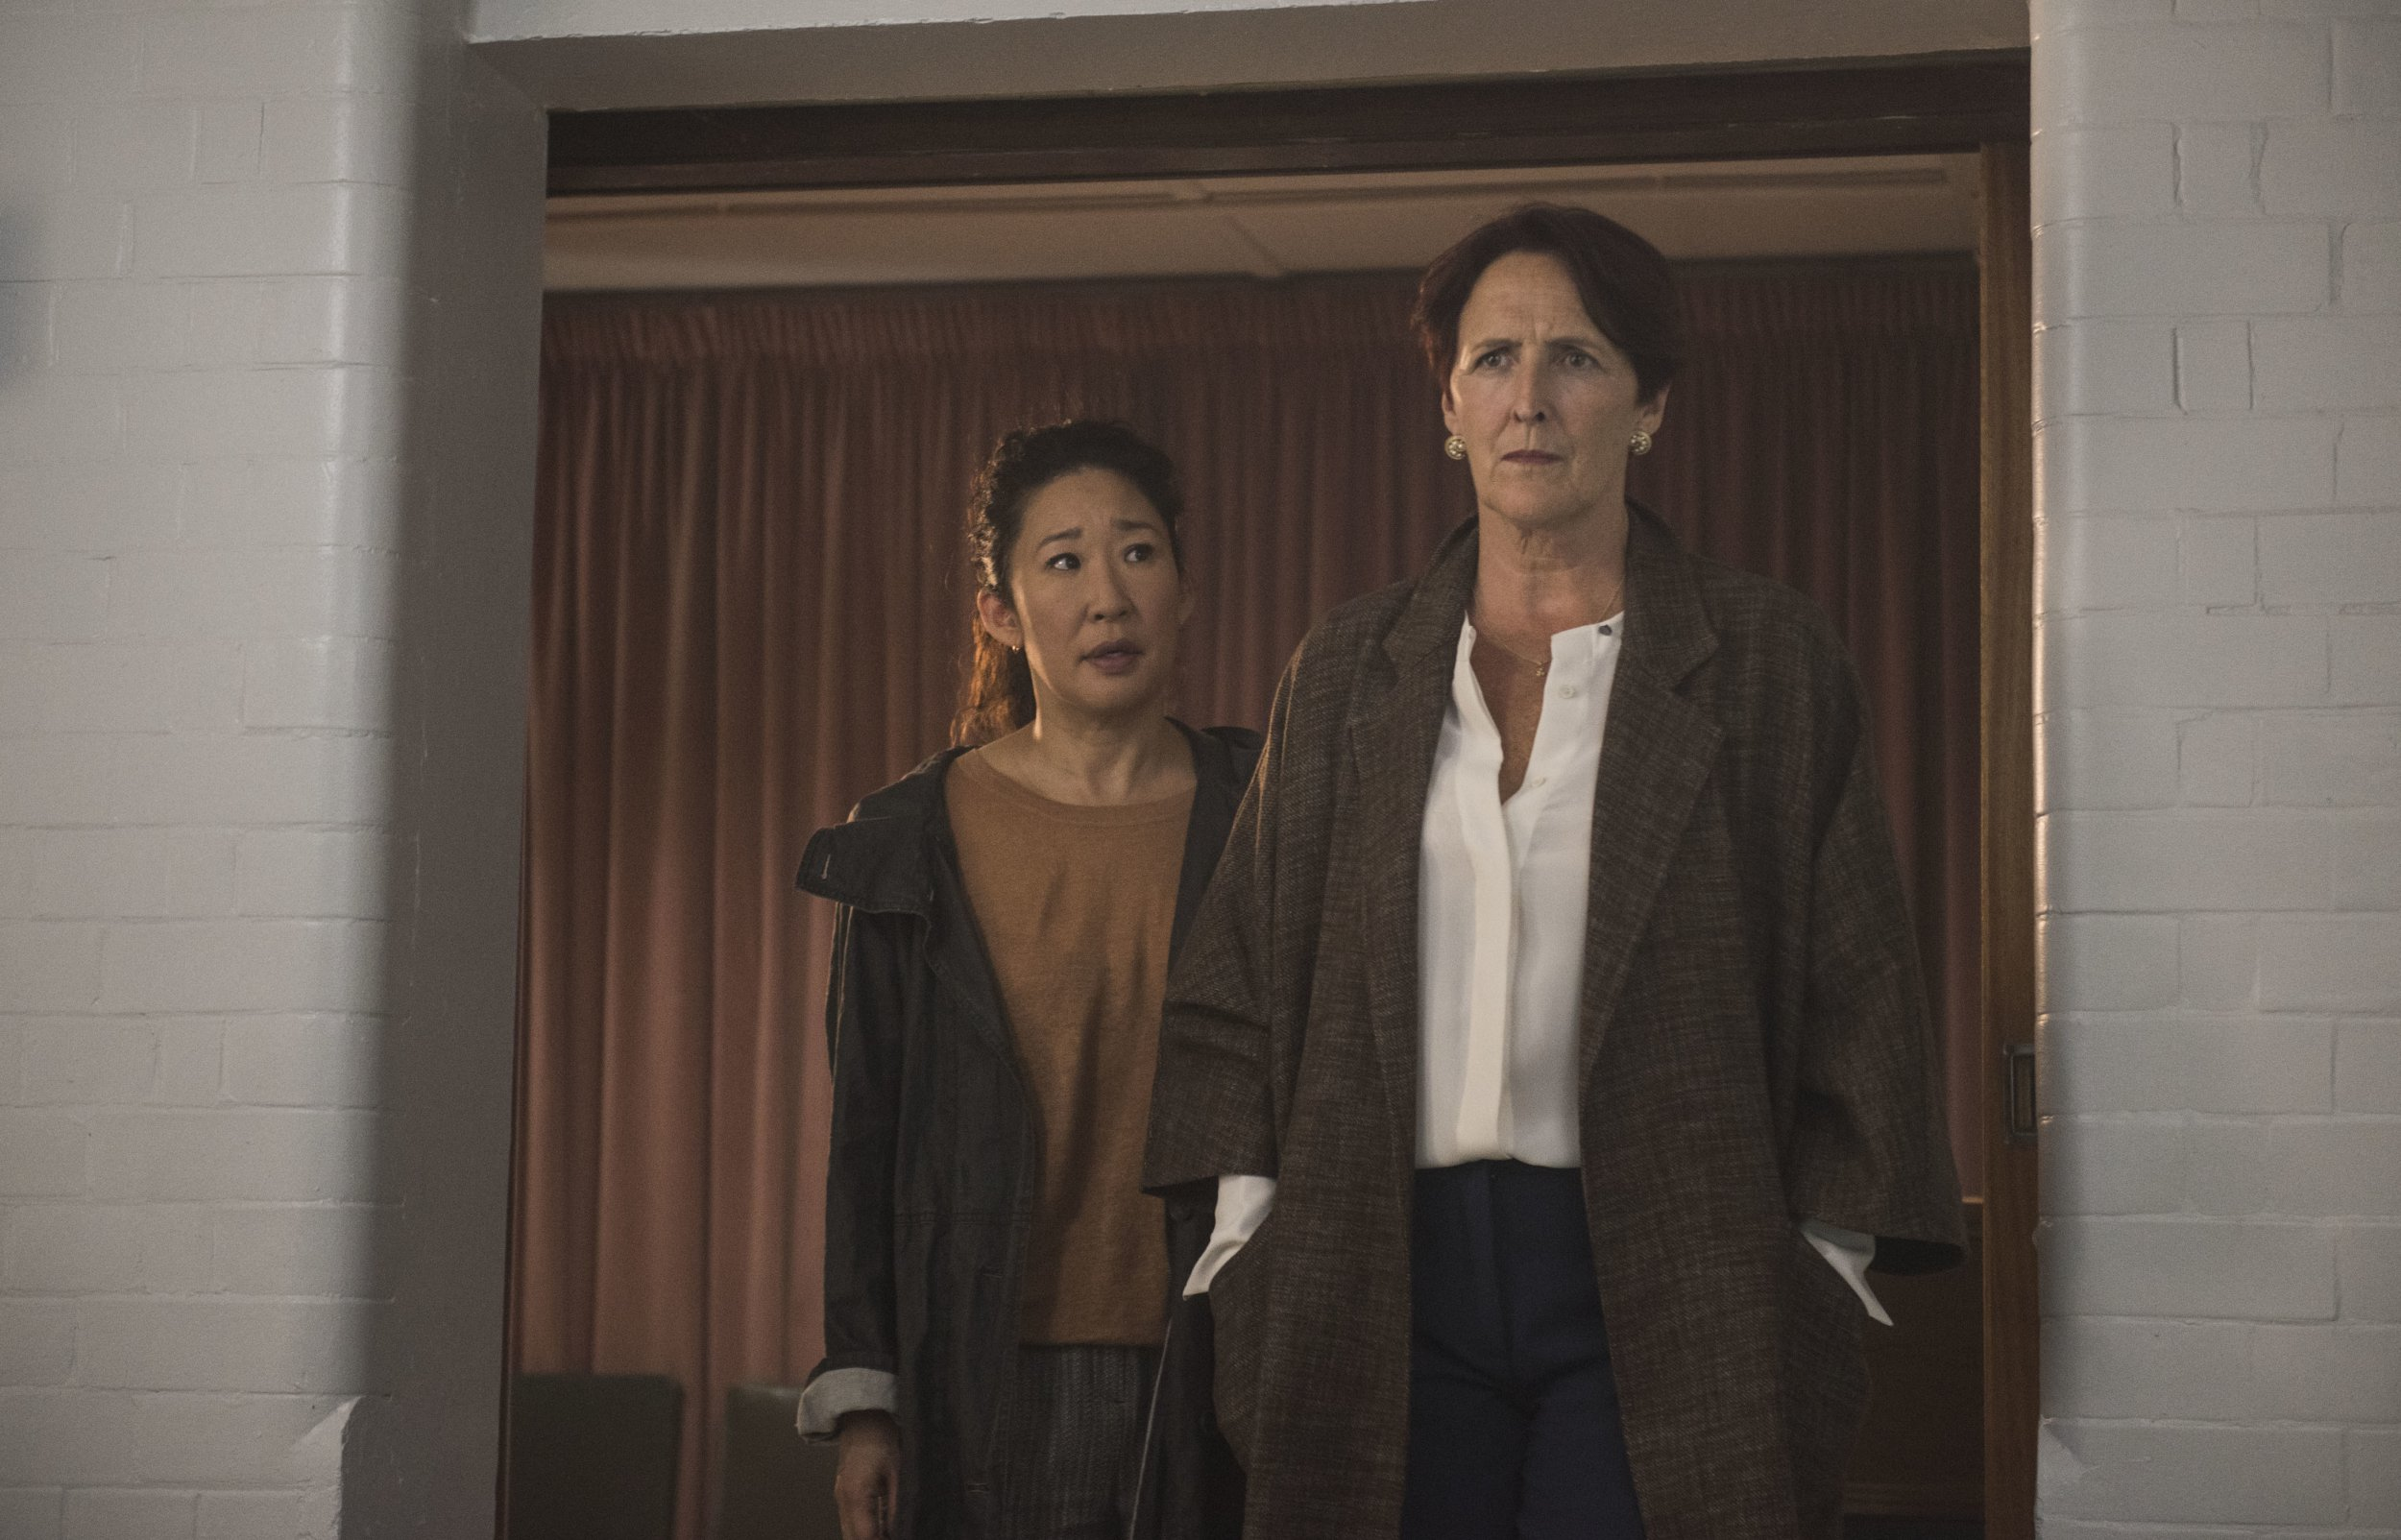 Killing Eve season 2 brings back old friend in shock cliffhanger – but what do they want?